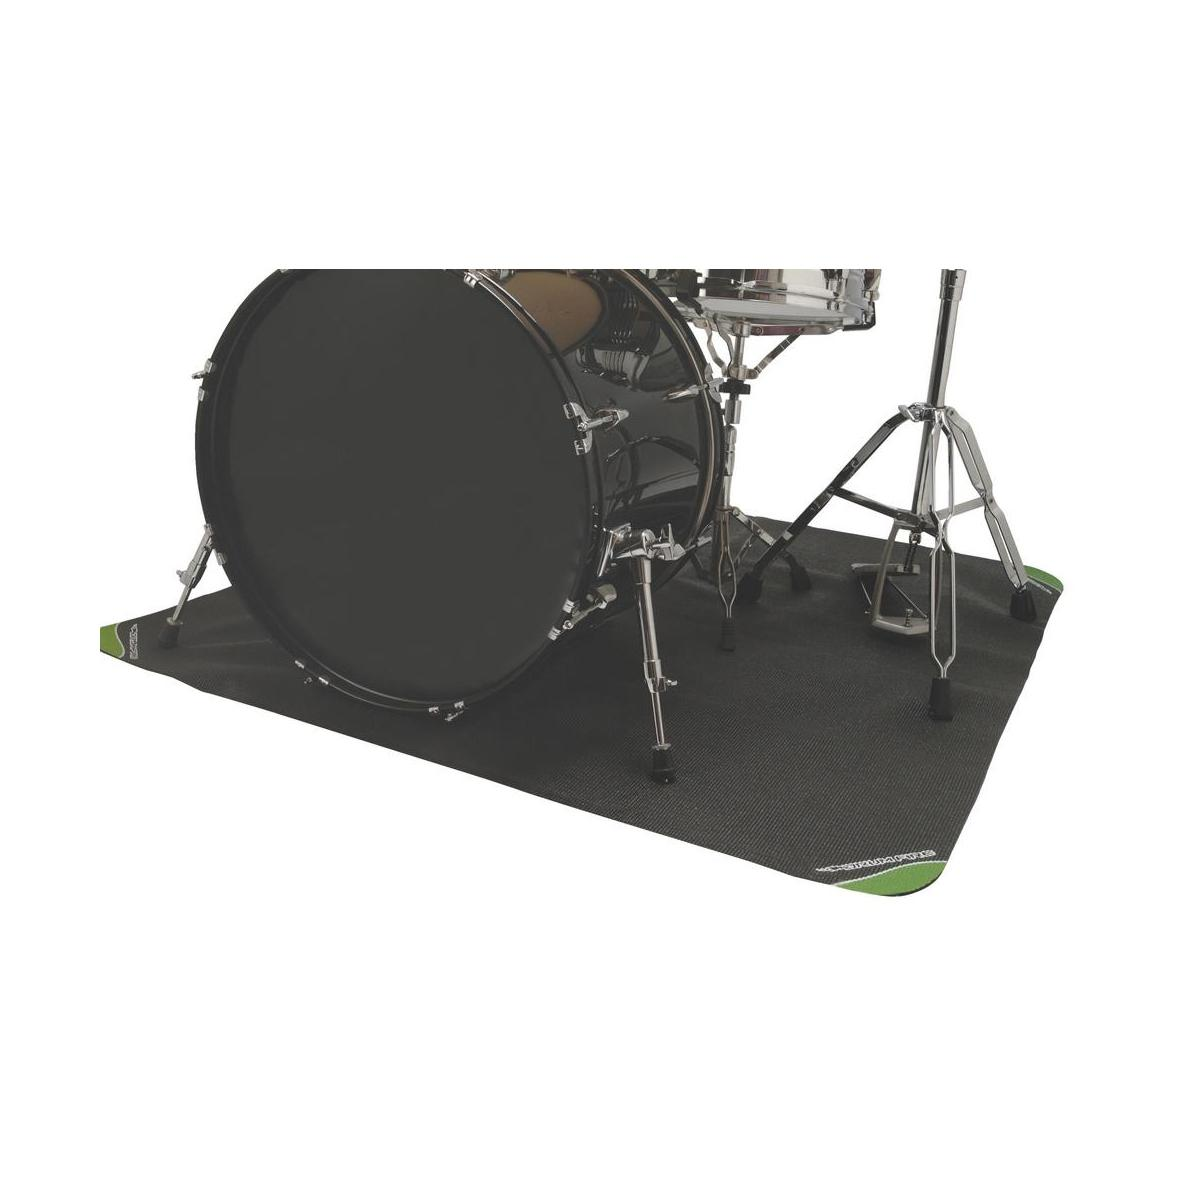 on stage dma4450 drumfire non slip drum mat with bag 4 39 x 4 39 musical instruments. Black Bedroom Furniture Sets. Home Design Ideas